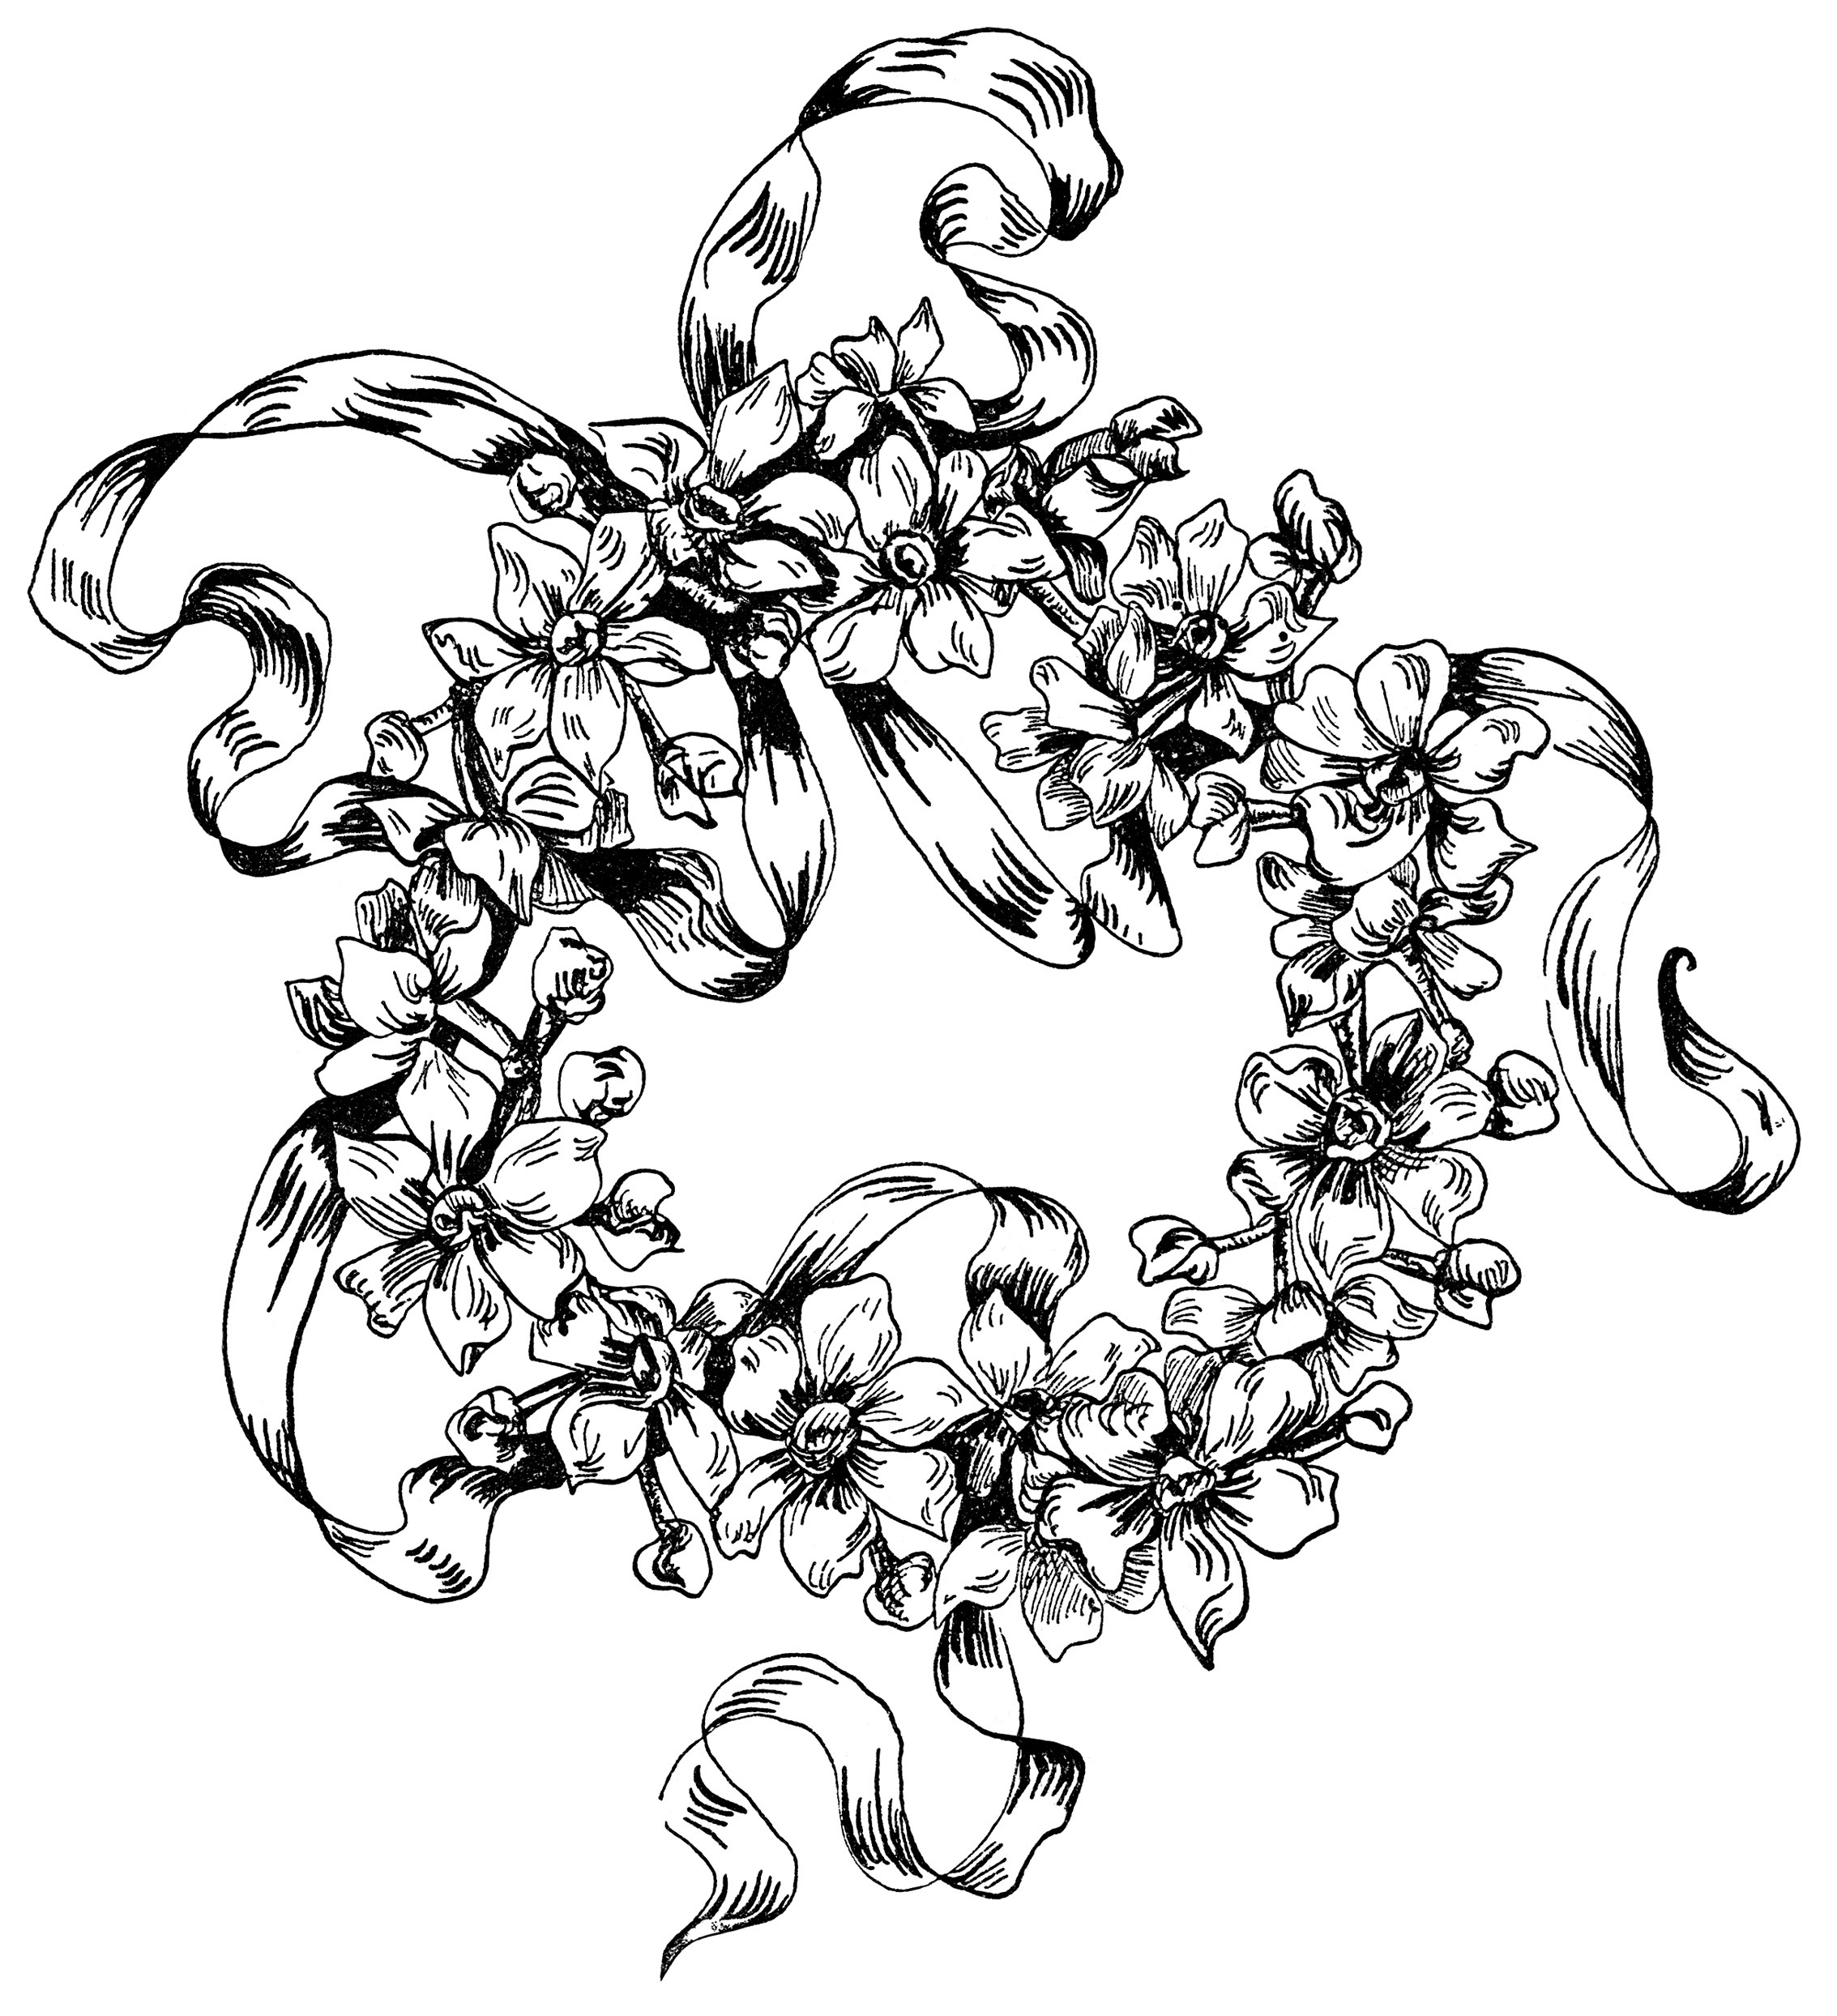 Drawn ornamental black and white #1